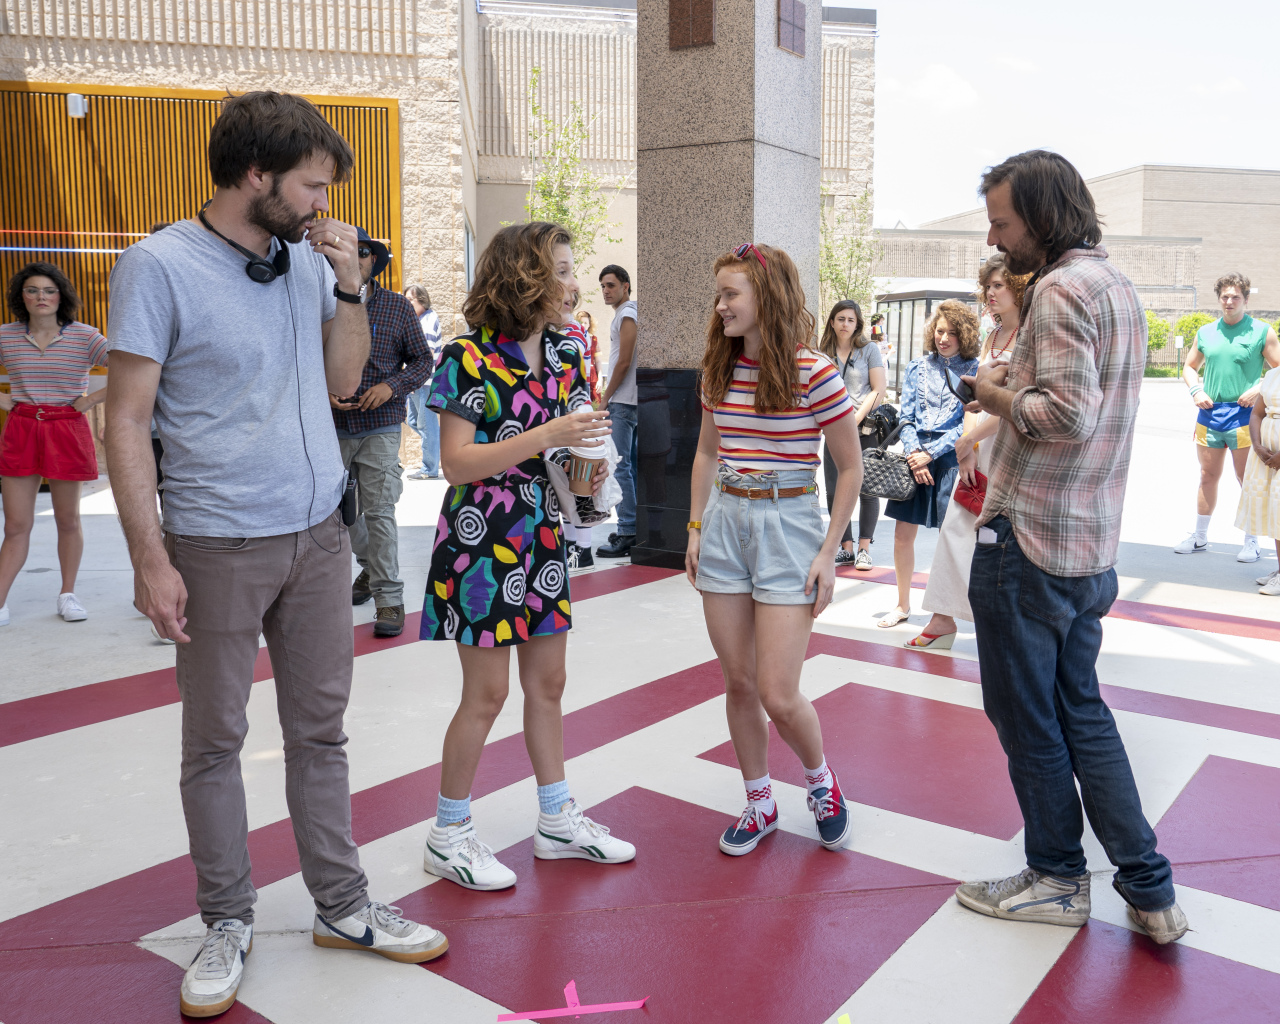 Stranger Things 3 - Behind the Scenes - The Duffer Brothers with Sadie Sink and Millie Bobby Brown